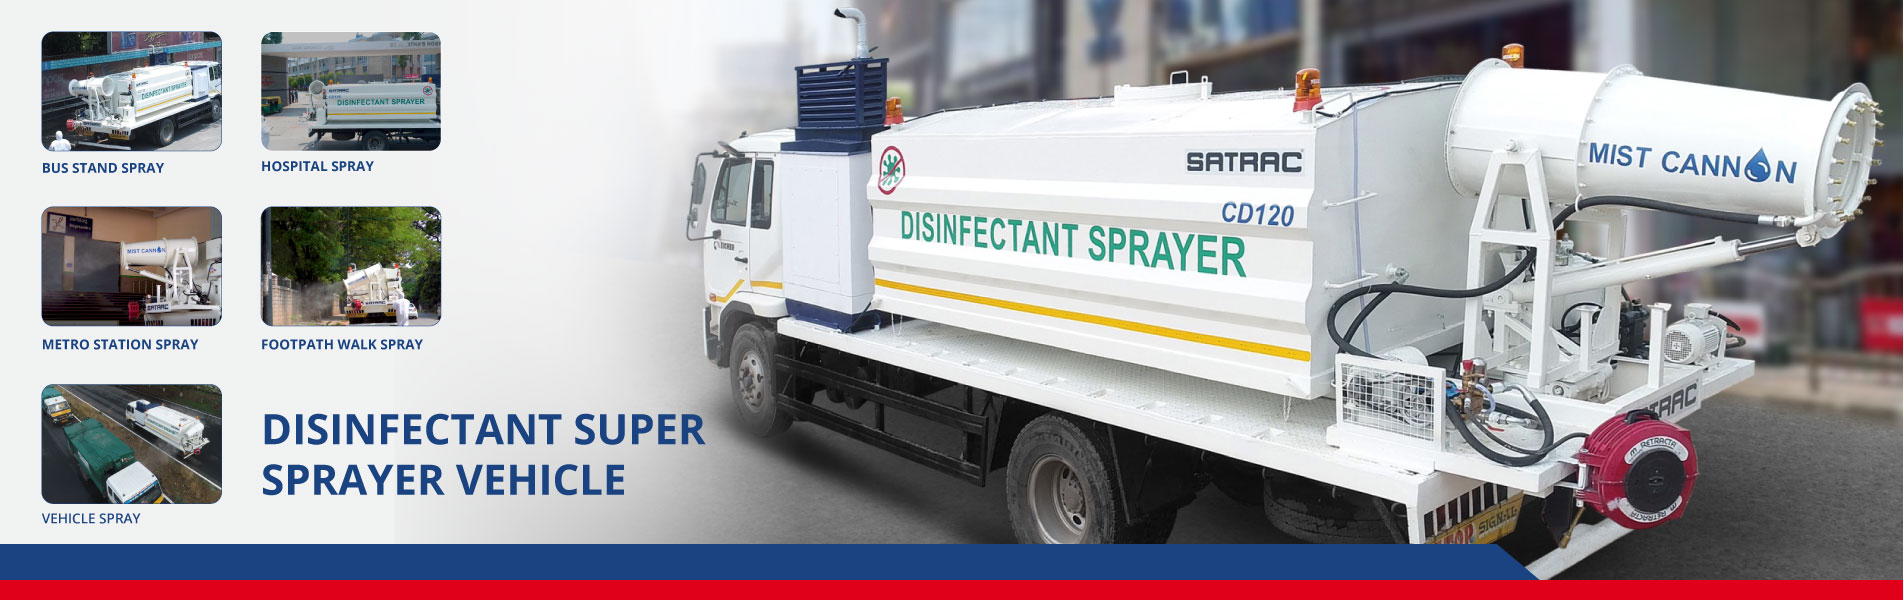 DISINFECTANT SUPER SPRAYER VEHICLE